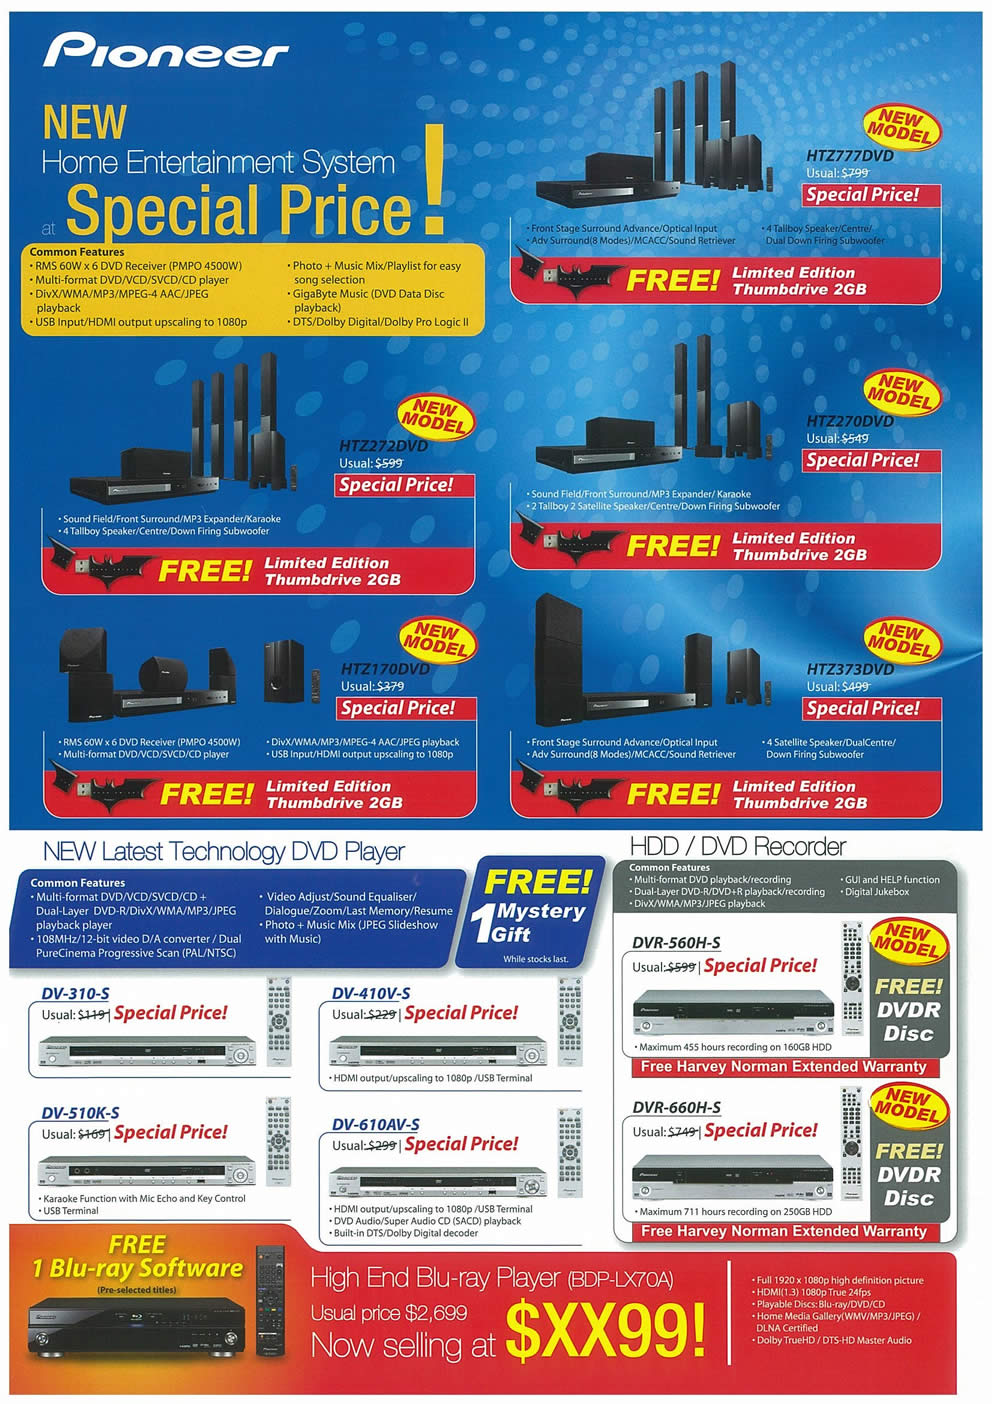 Comex 2008 price list image brochure of Pioneer Page 2